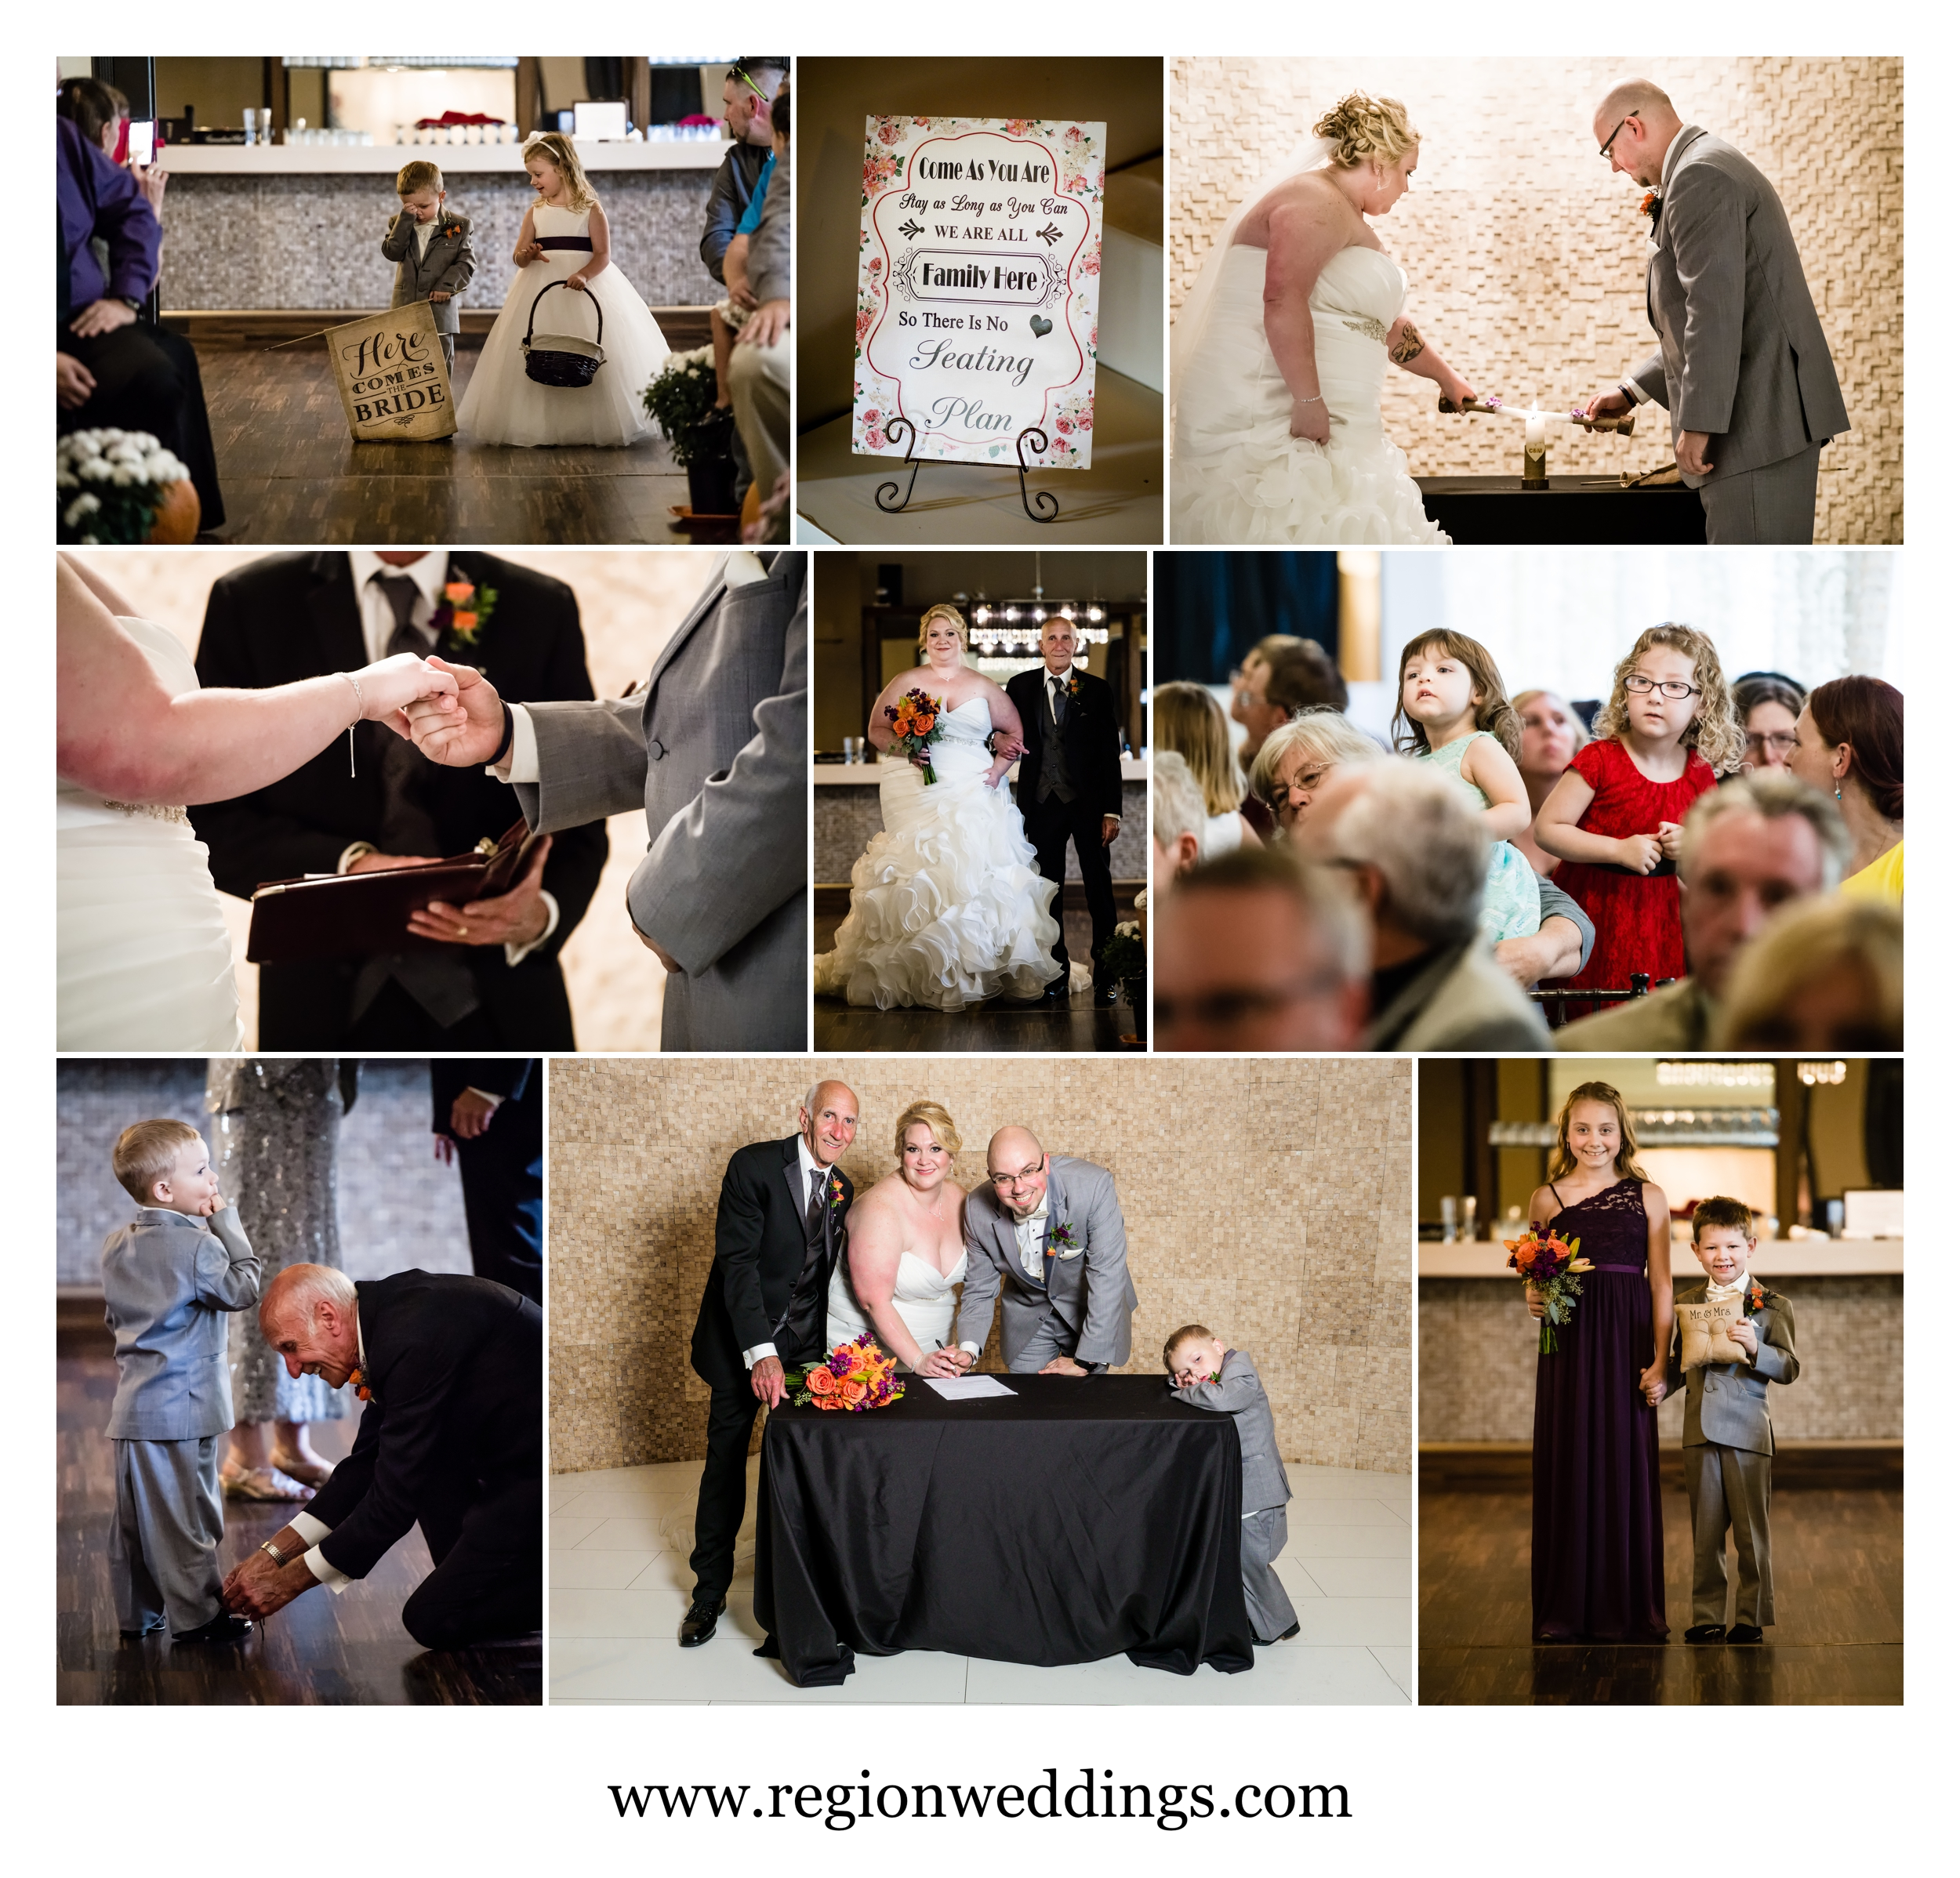 Wedding ceremony at The Allure in Laporte, Indiana.